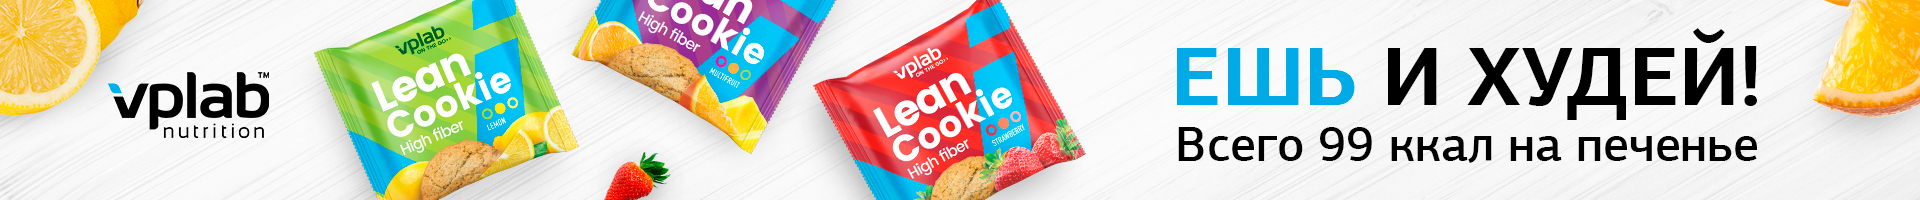 1920 200 shape lean cookie